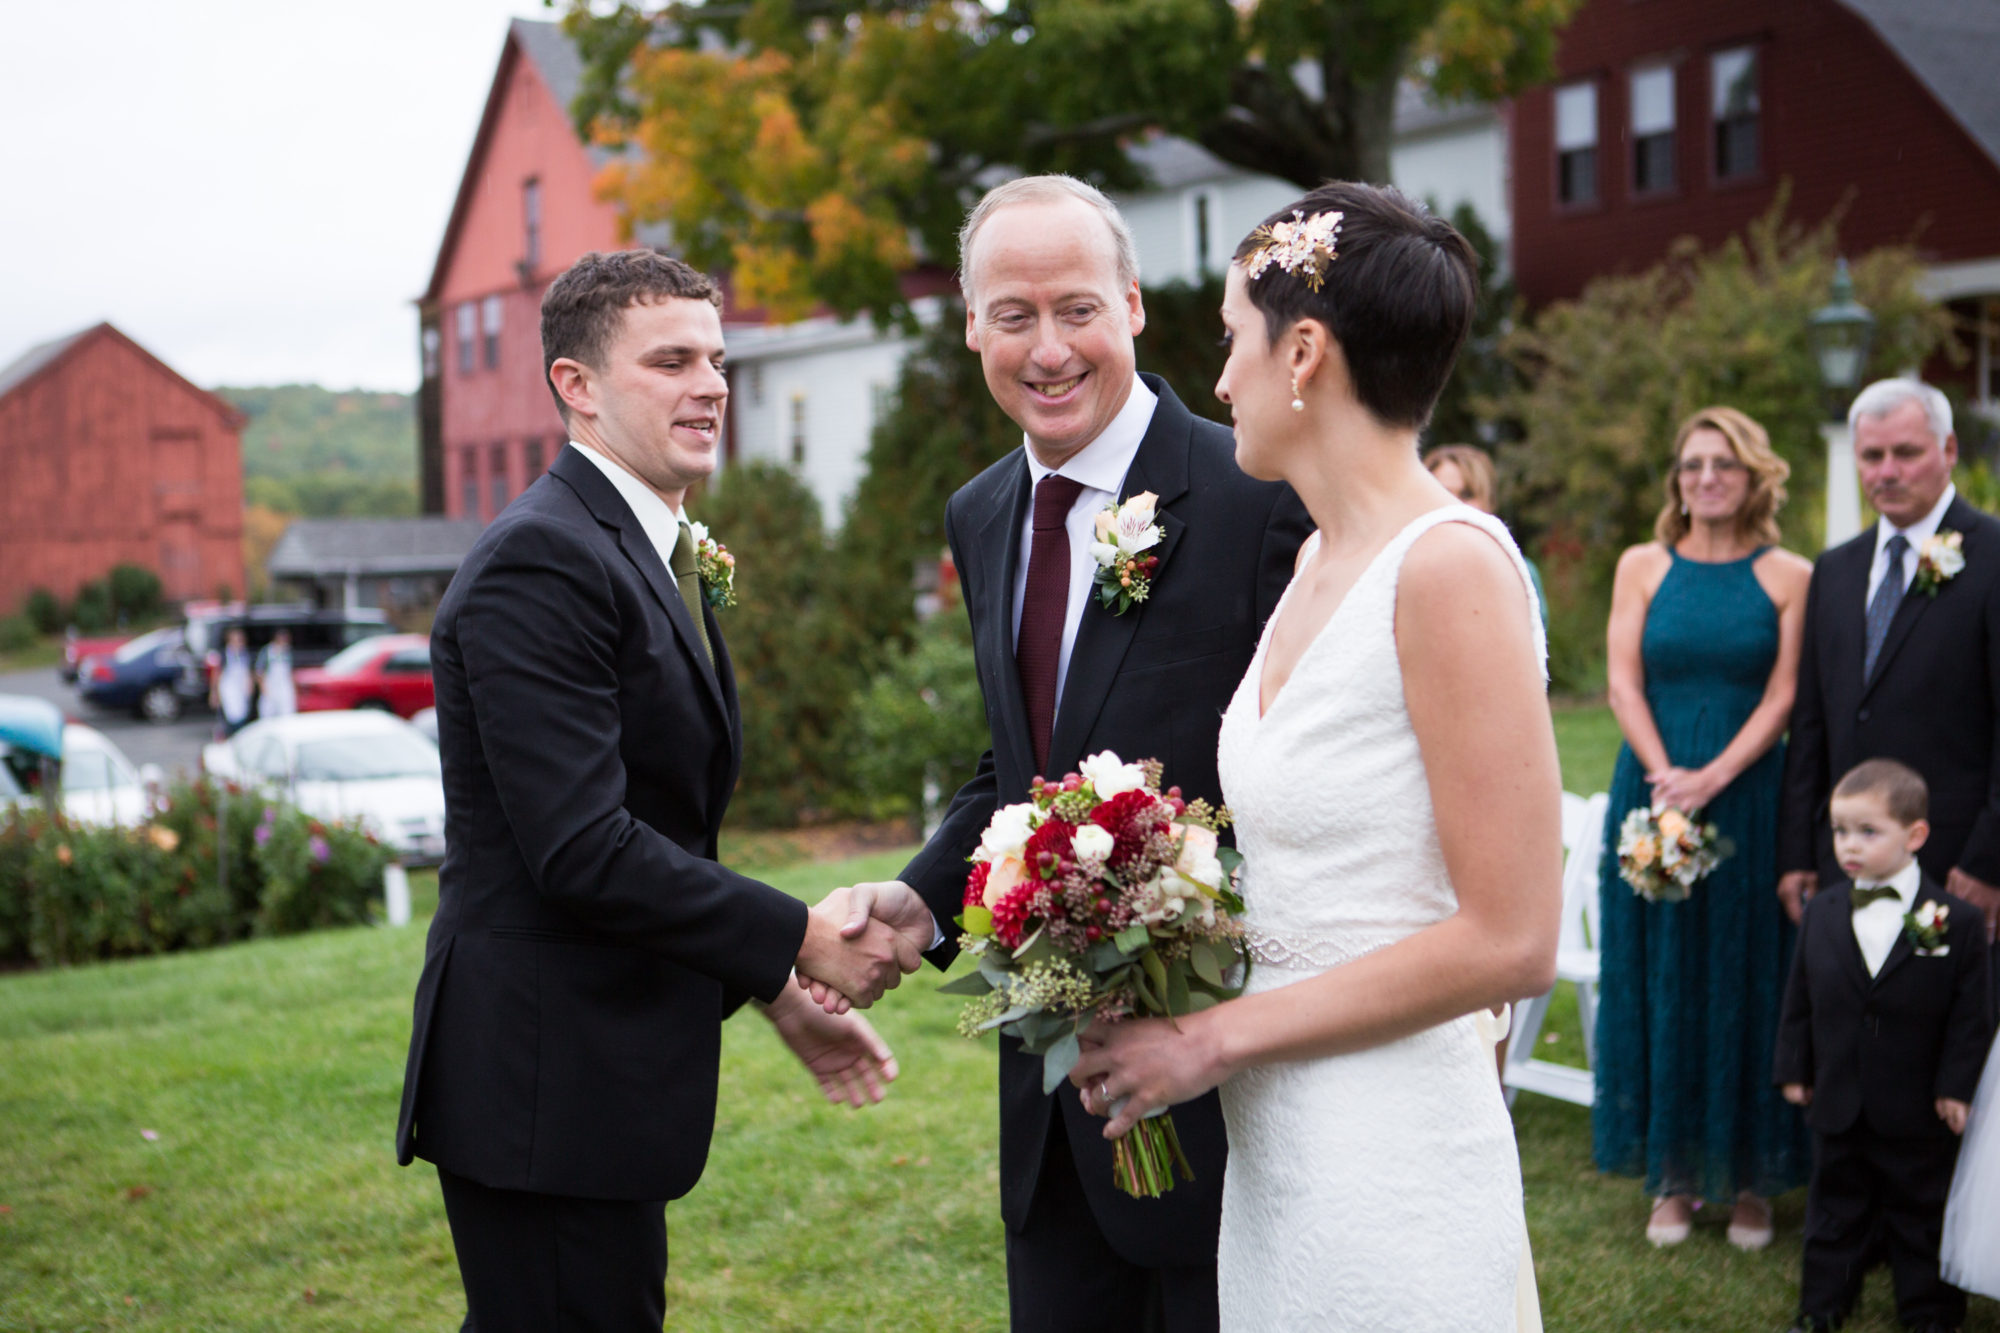 Father Ceremony Bride Groom Wedding Massachusetts Zsuzsi Pal Photography Destination